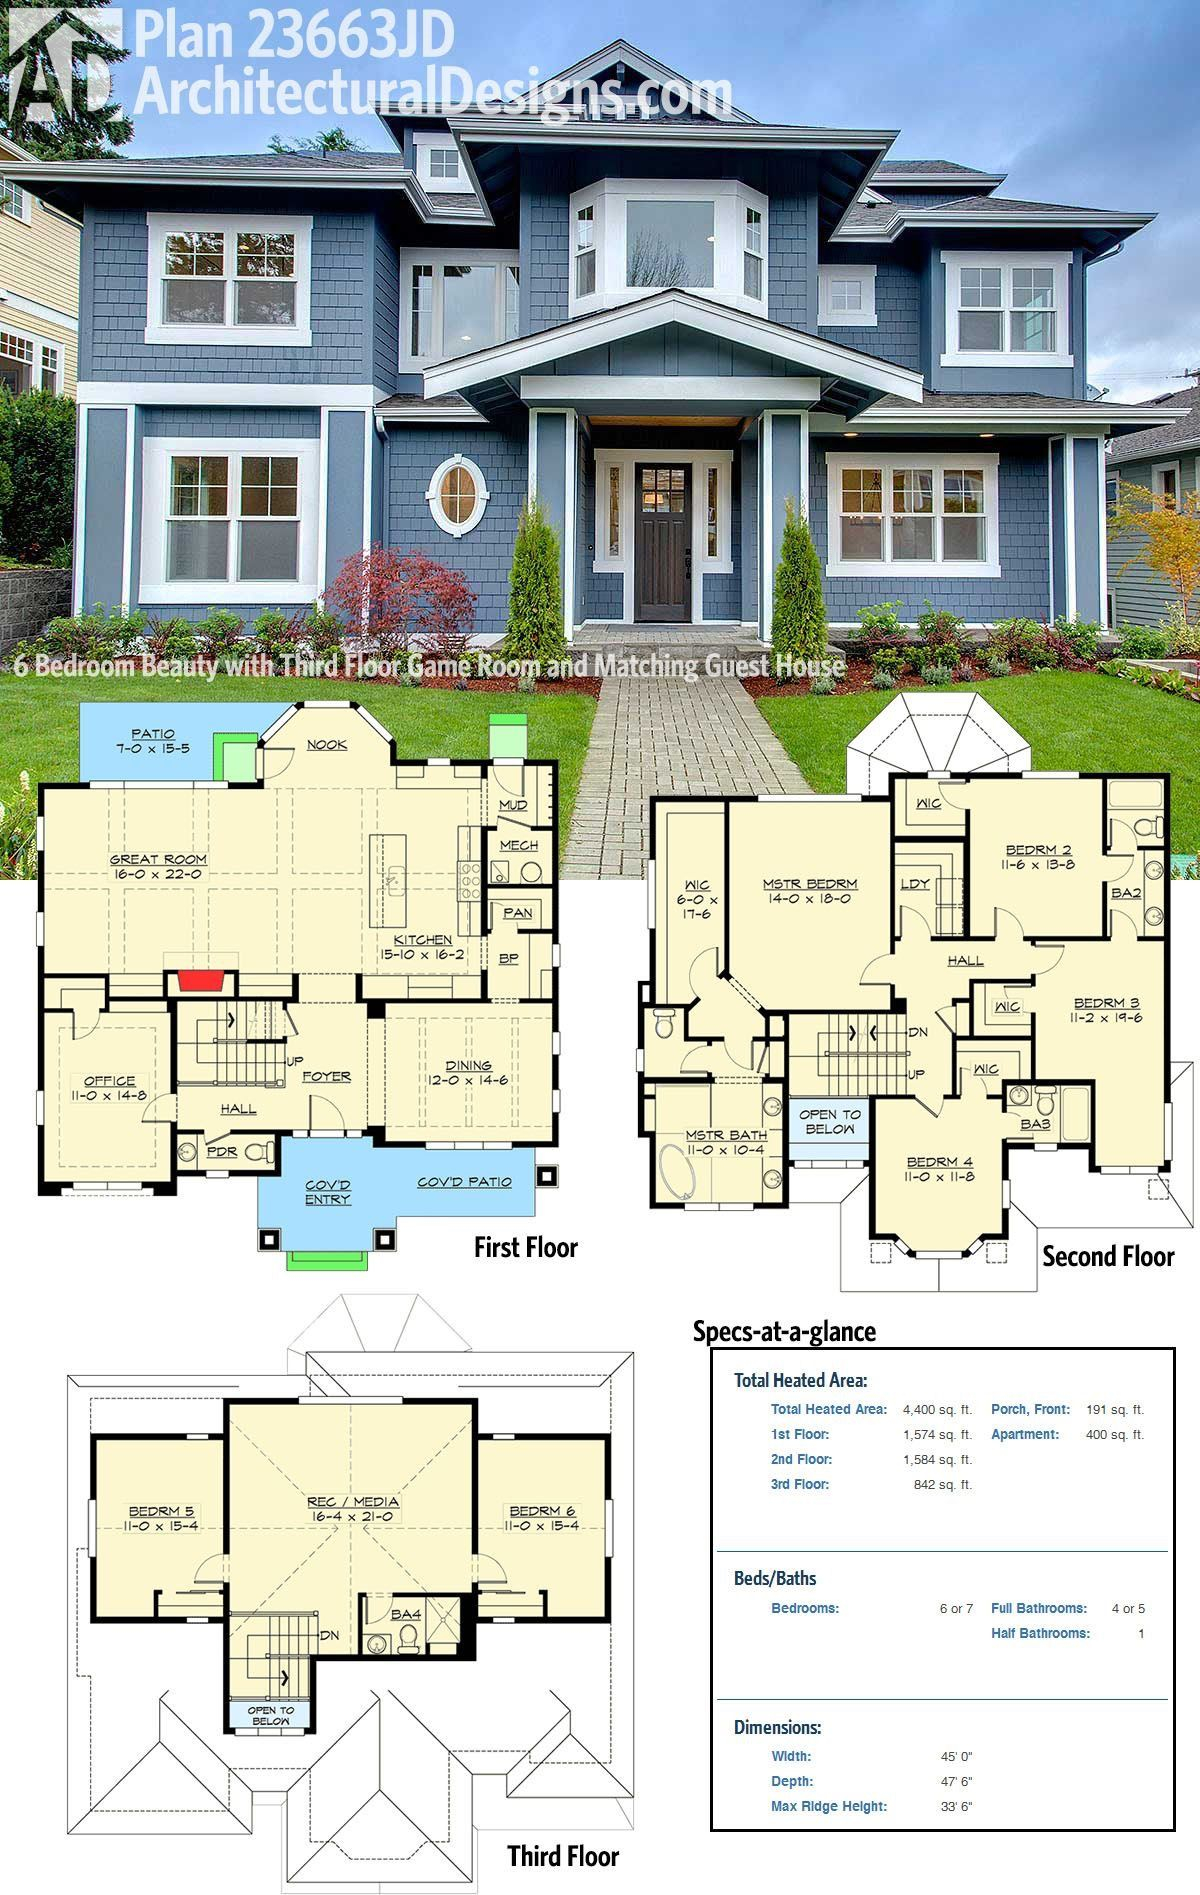 Amazing house plan!! Love it | At Home | House plans ...